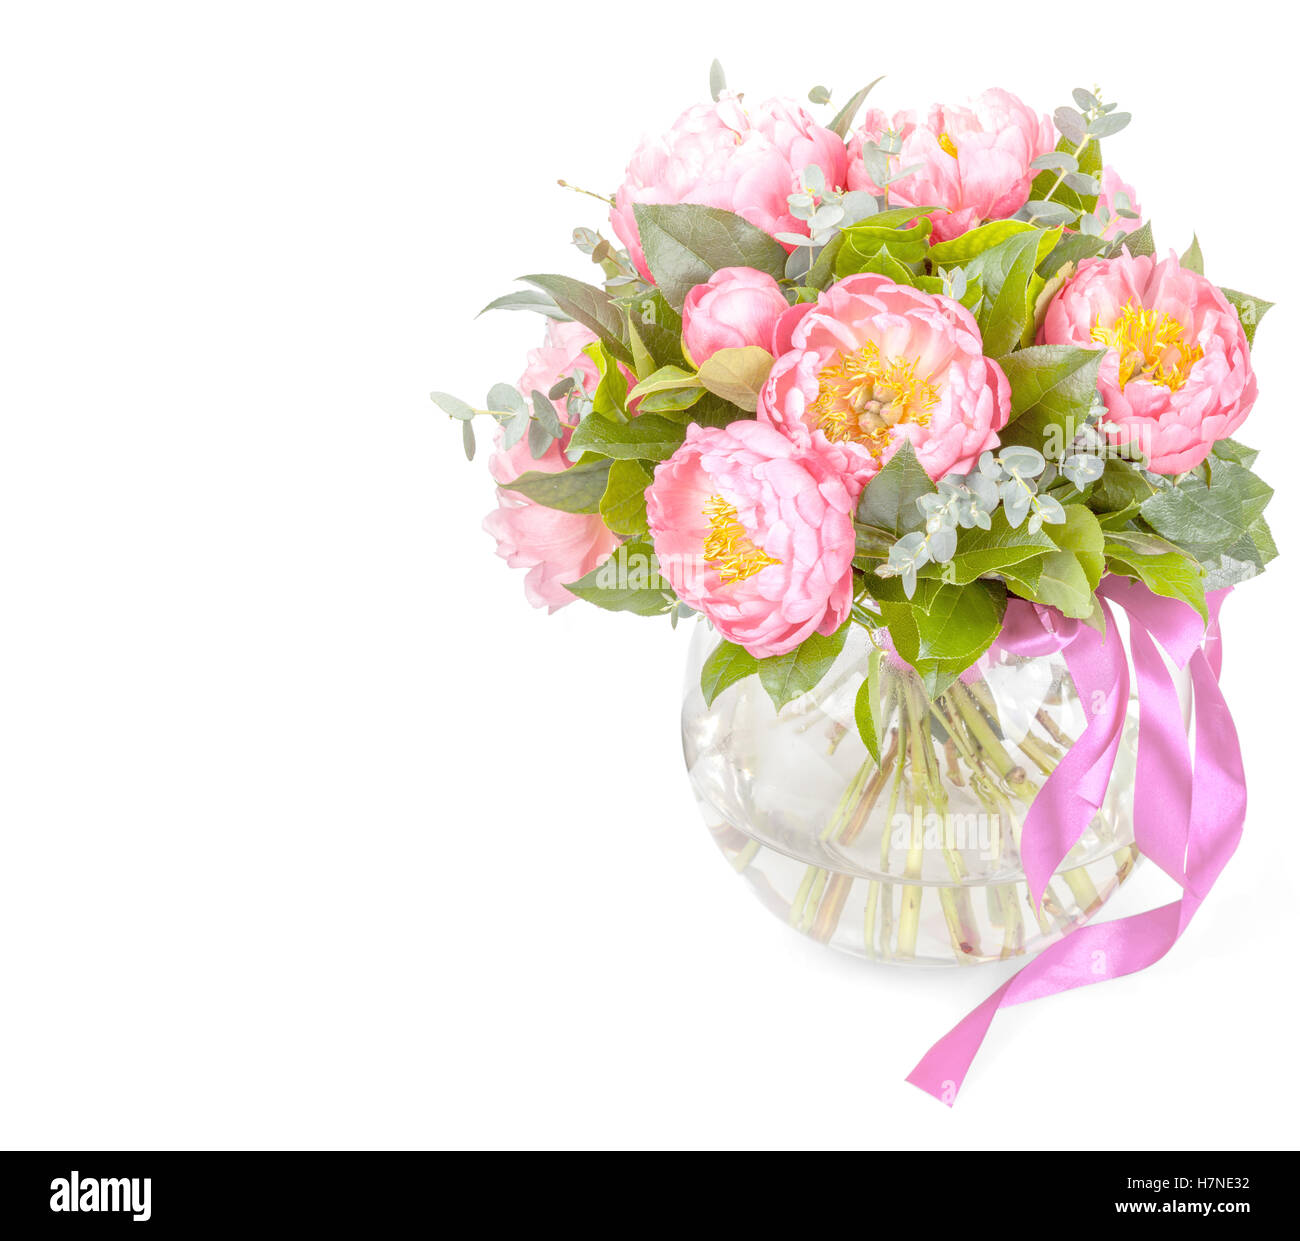 Amazing bouquet of pink pions isolated on white stock photo amazing bouquet of pink pions isolated on white izmirmasajfo